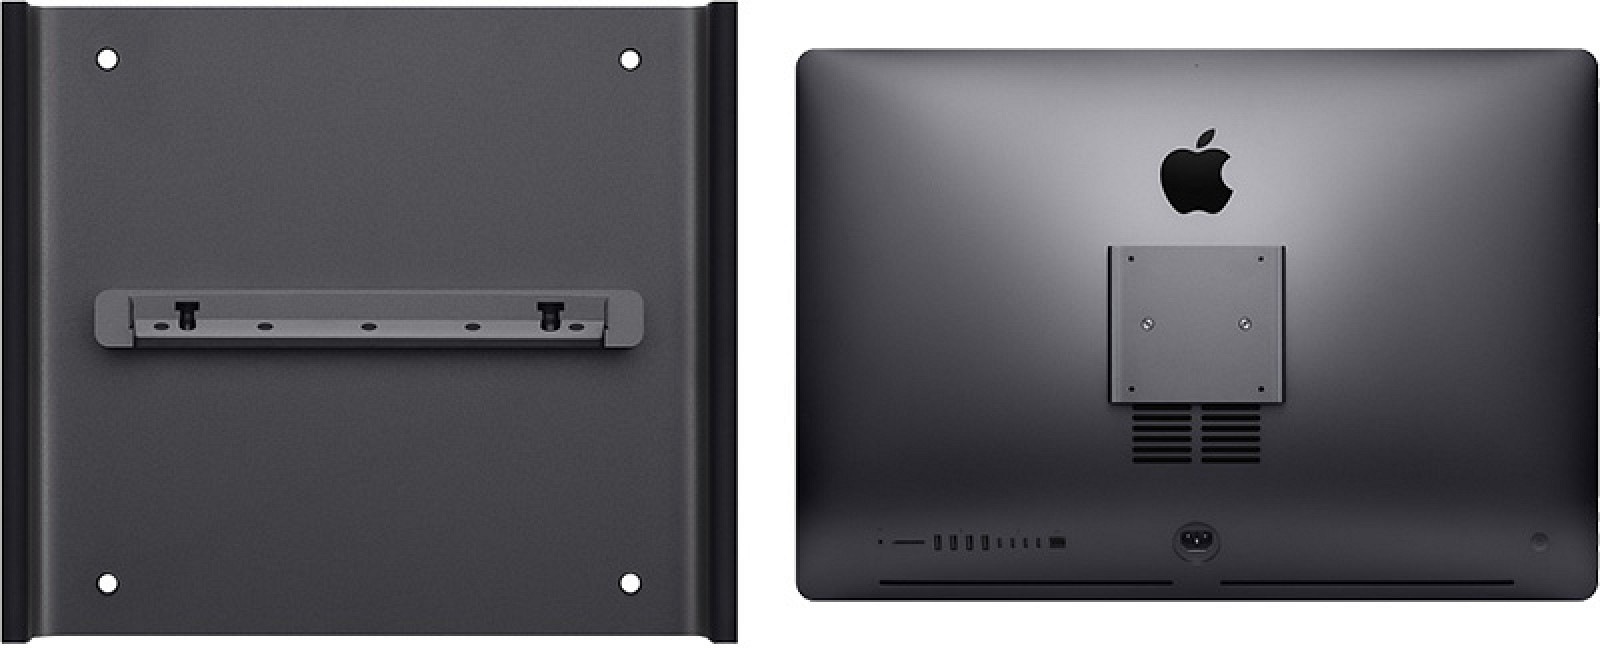 a1863ea5a3a Video Suggests Screws in iMac Pro s VESA Mounting Kit Are Prone to Break  When Unfastened